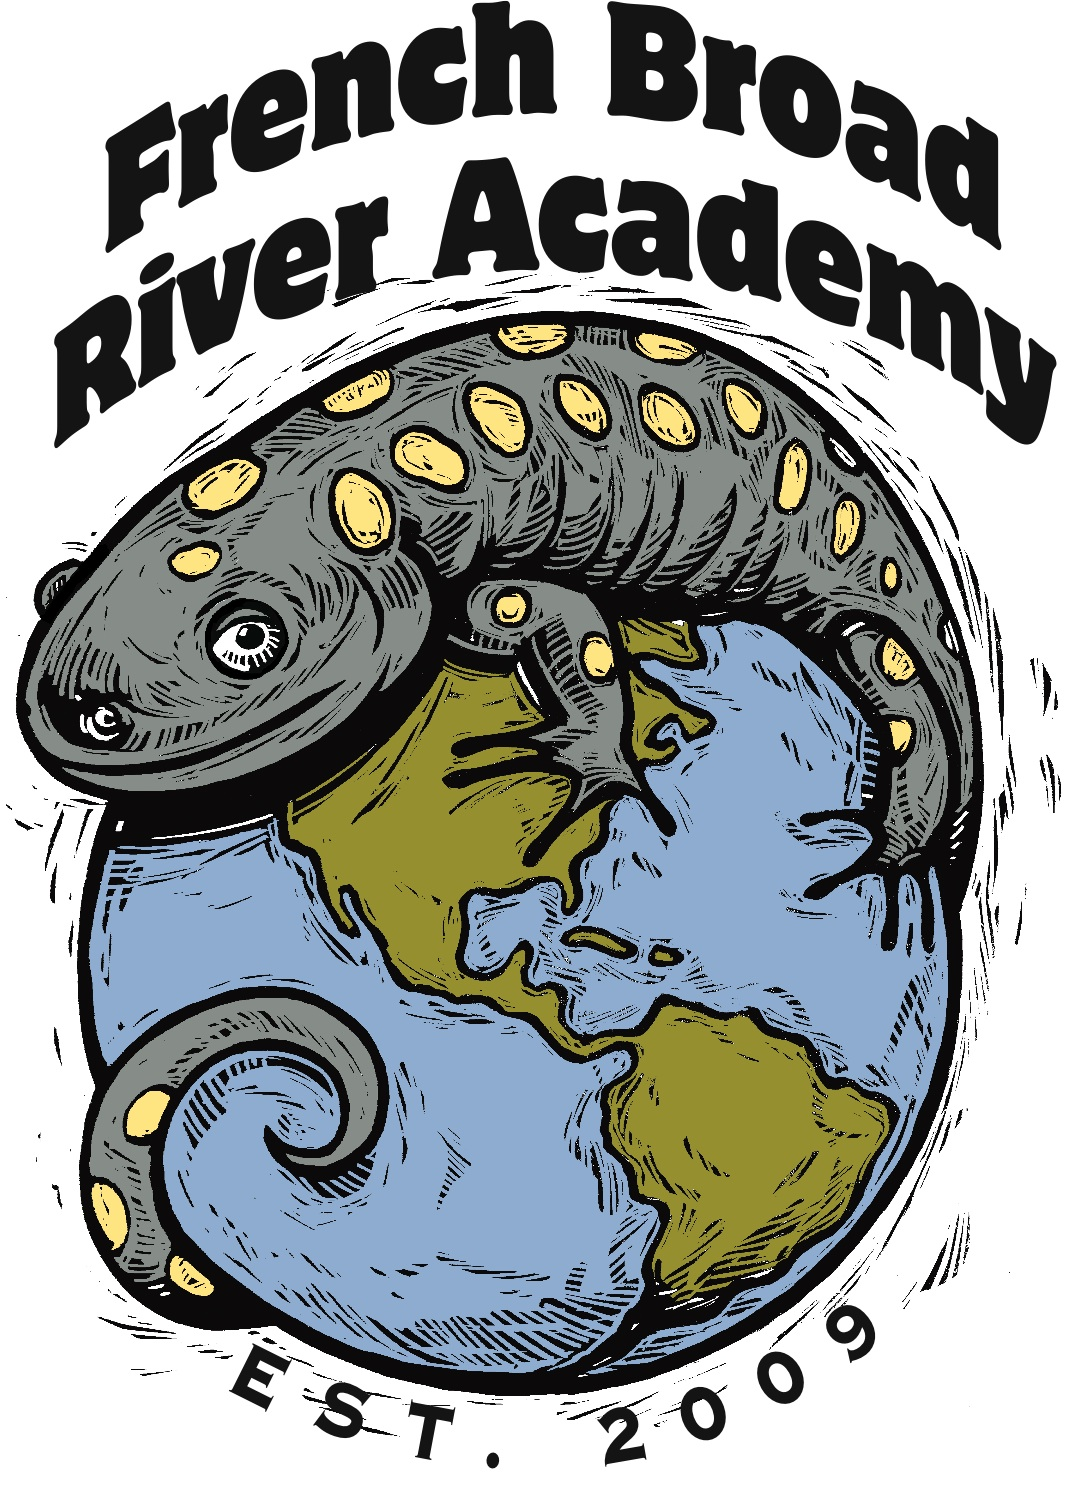 Girls Campus - French Broad River Academy